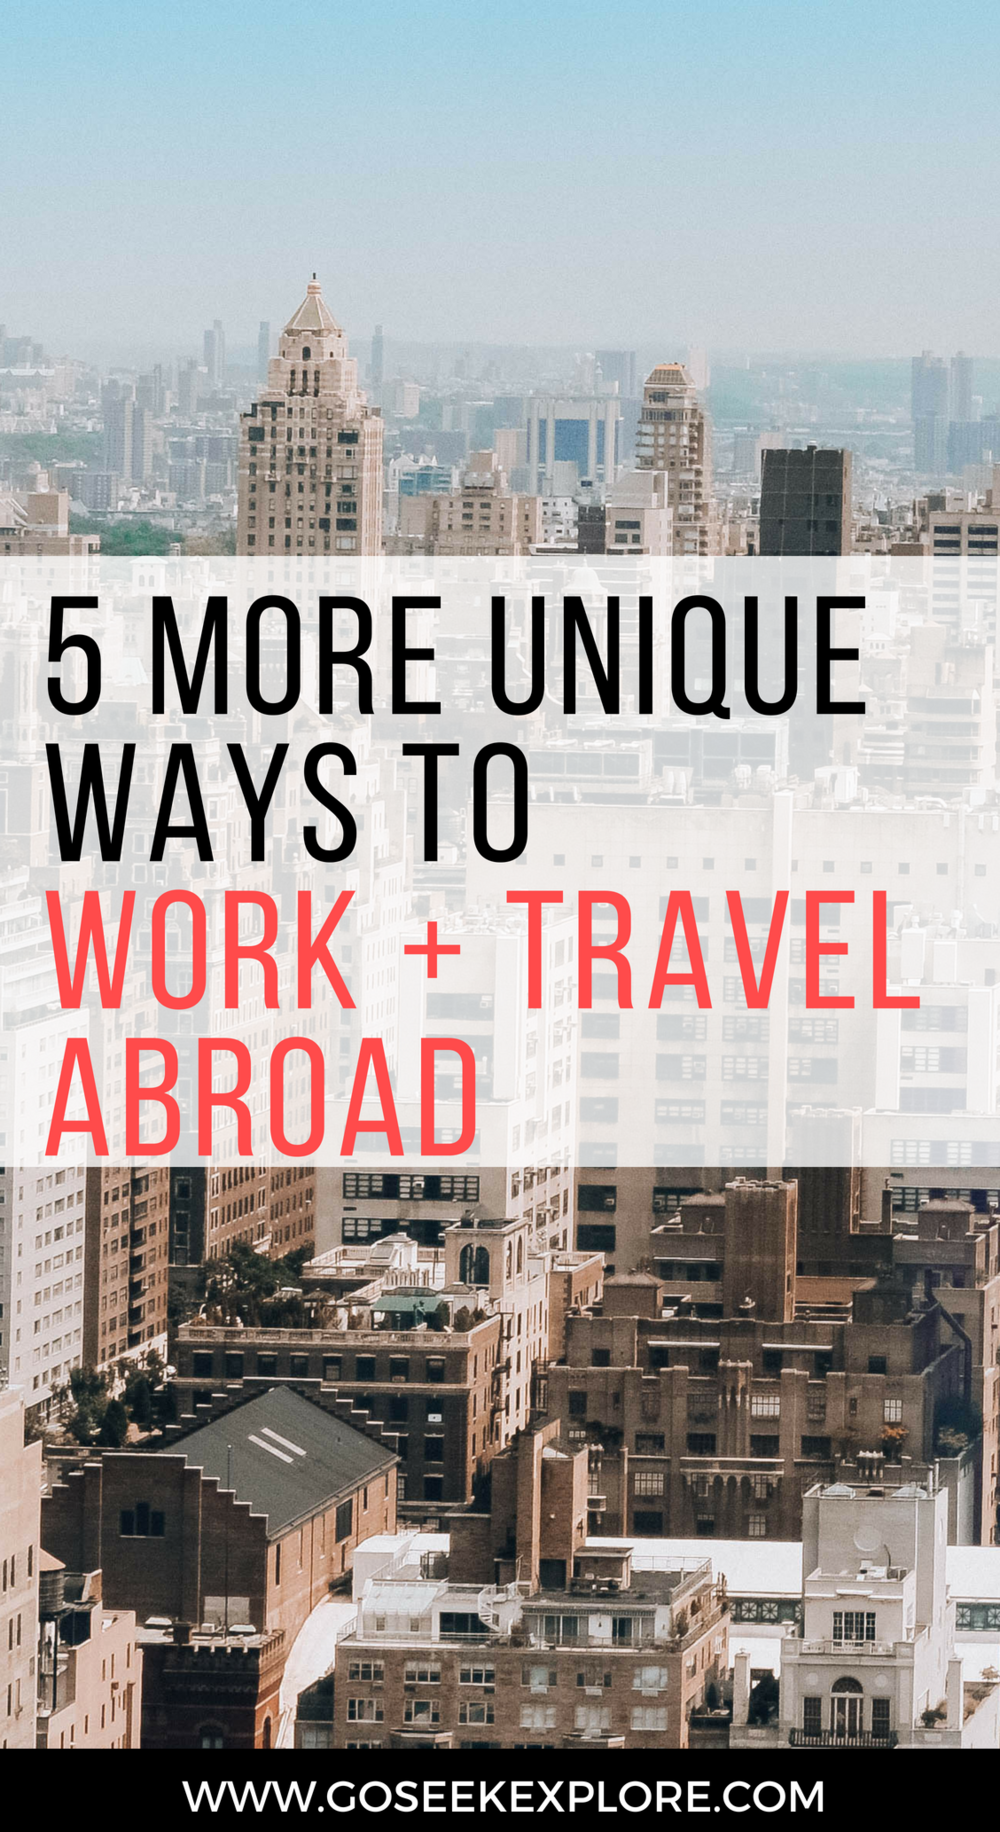 5 More Unique Ways to Work + Travel Abroad - travel jobs and opportunities you probably haven't thought of plus some tips on working abroad! / goseekepxlore.com / 5-ways-travel-work-abroad